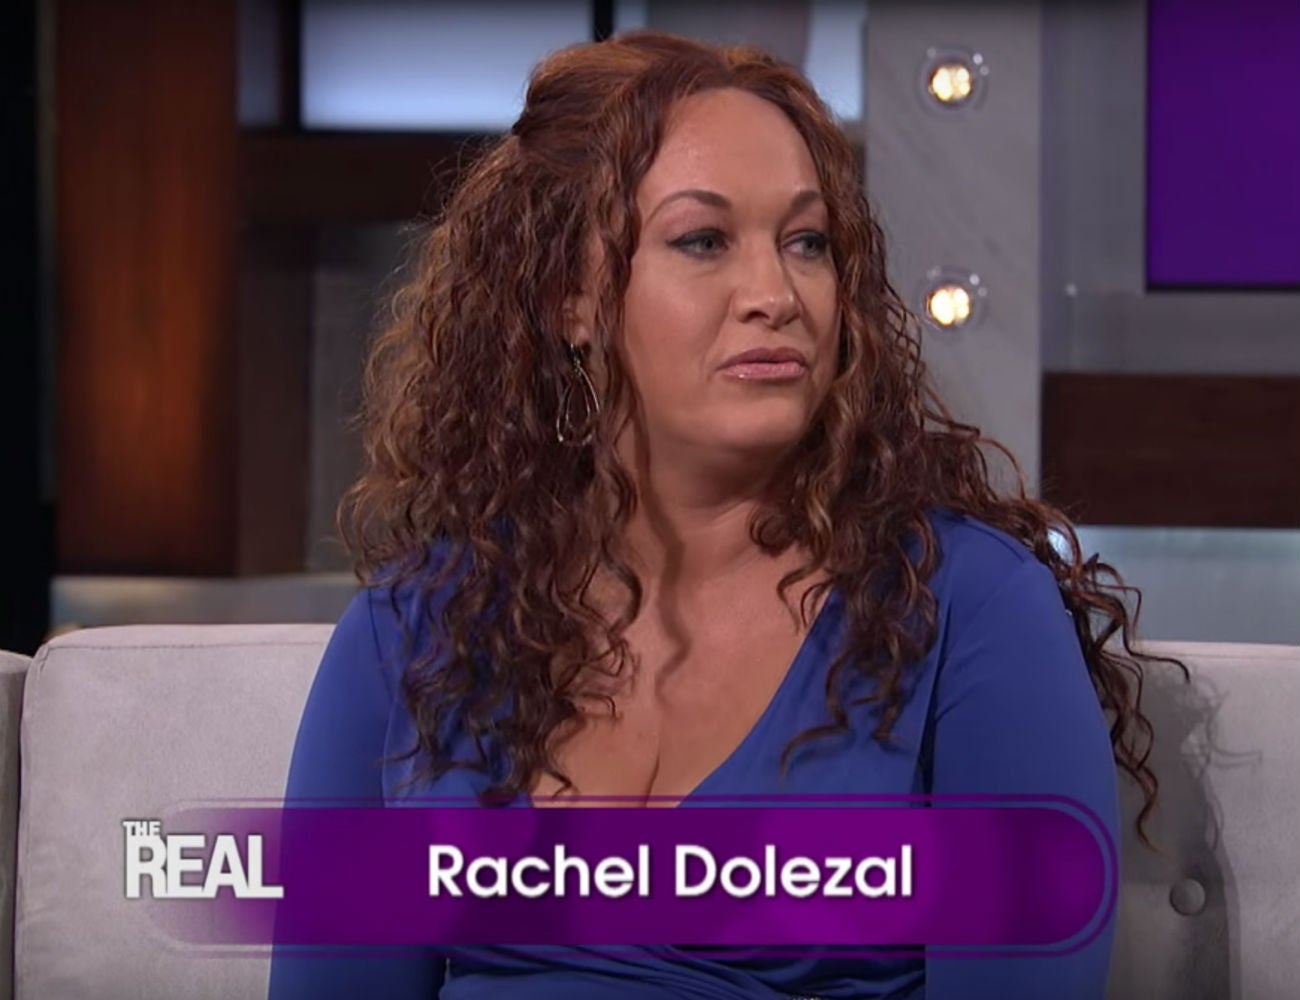 rachel dolezal pictures - photo #34